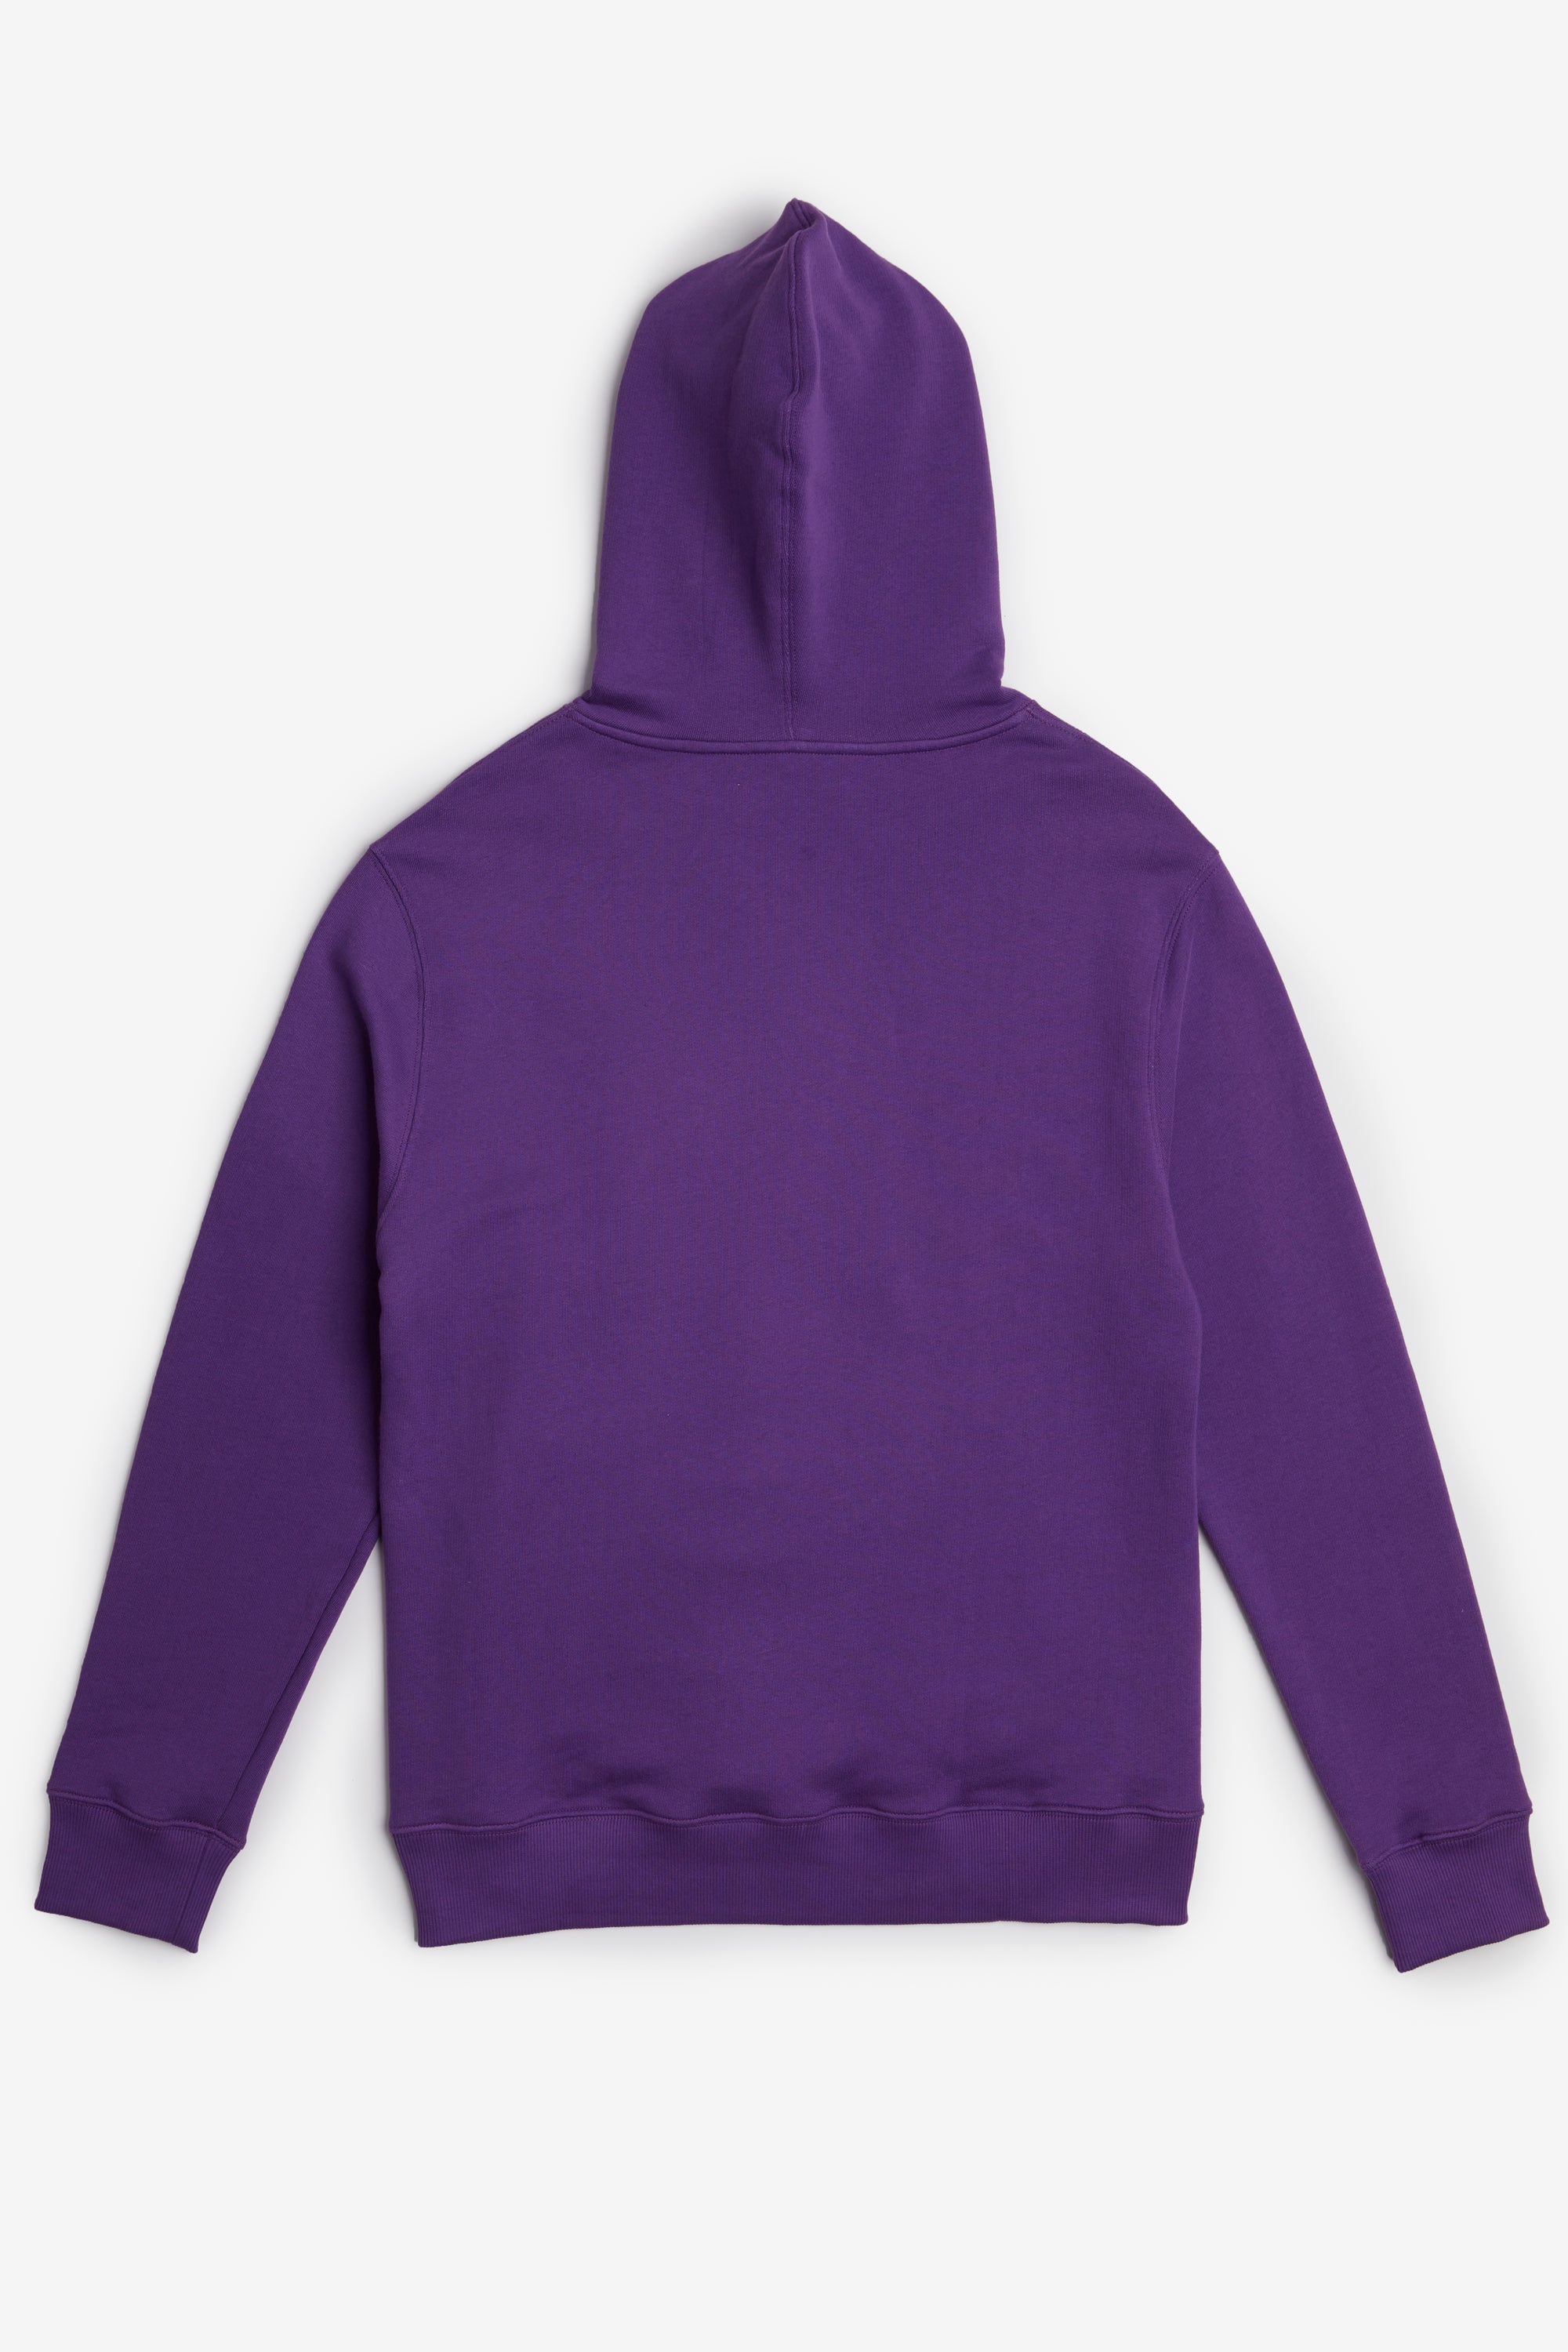 Purple graphic taped hoodie sweatshirt Rochambeau